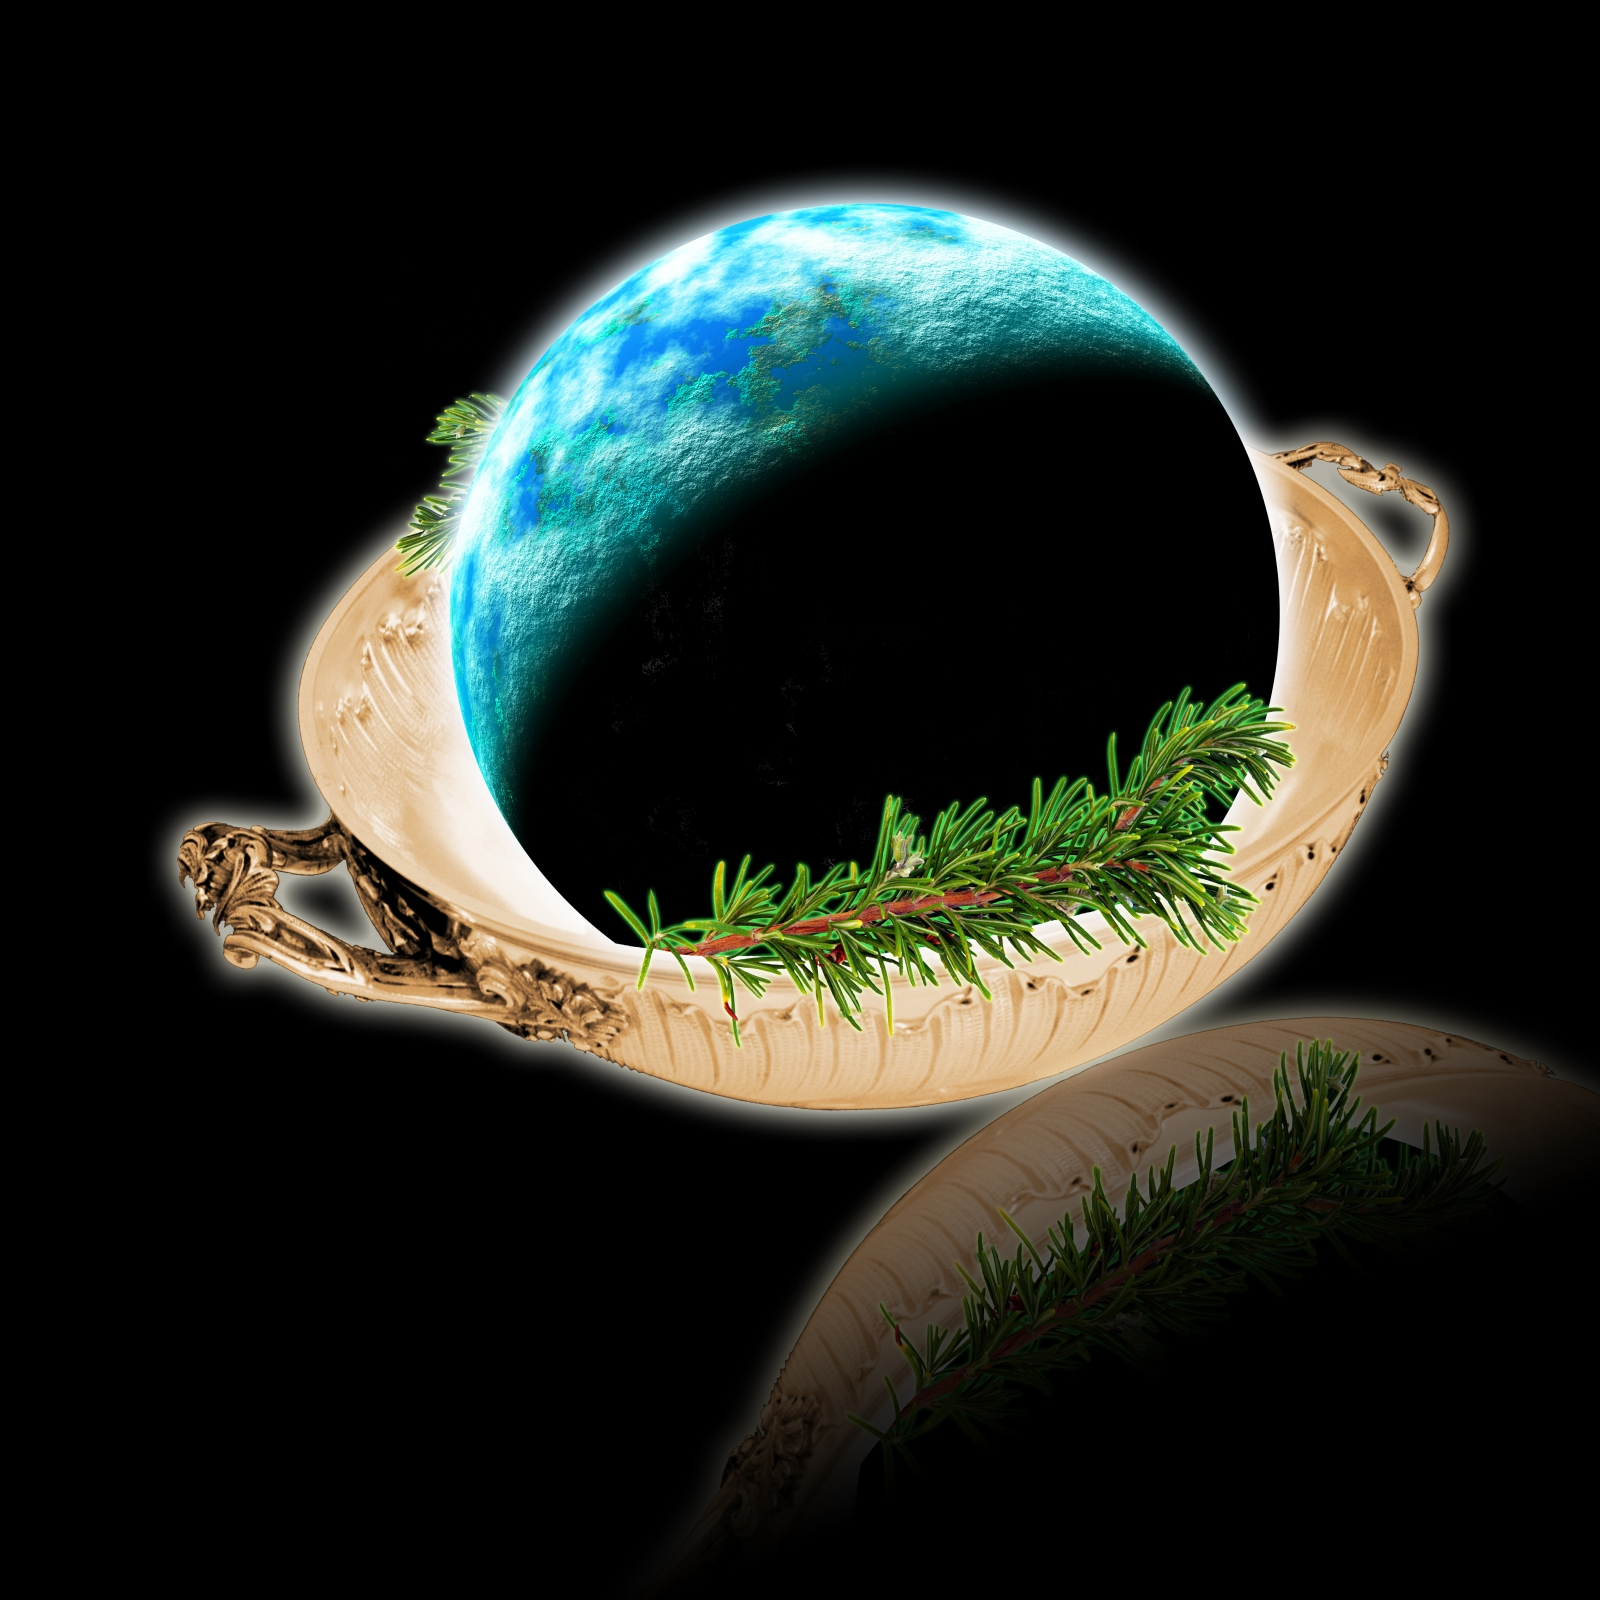 HIRES EARTH